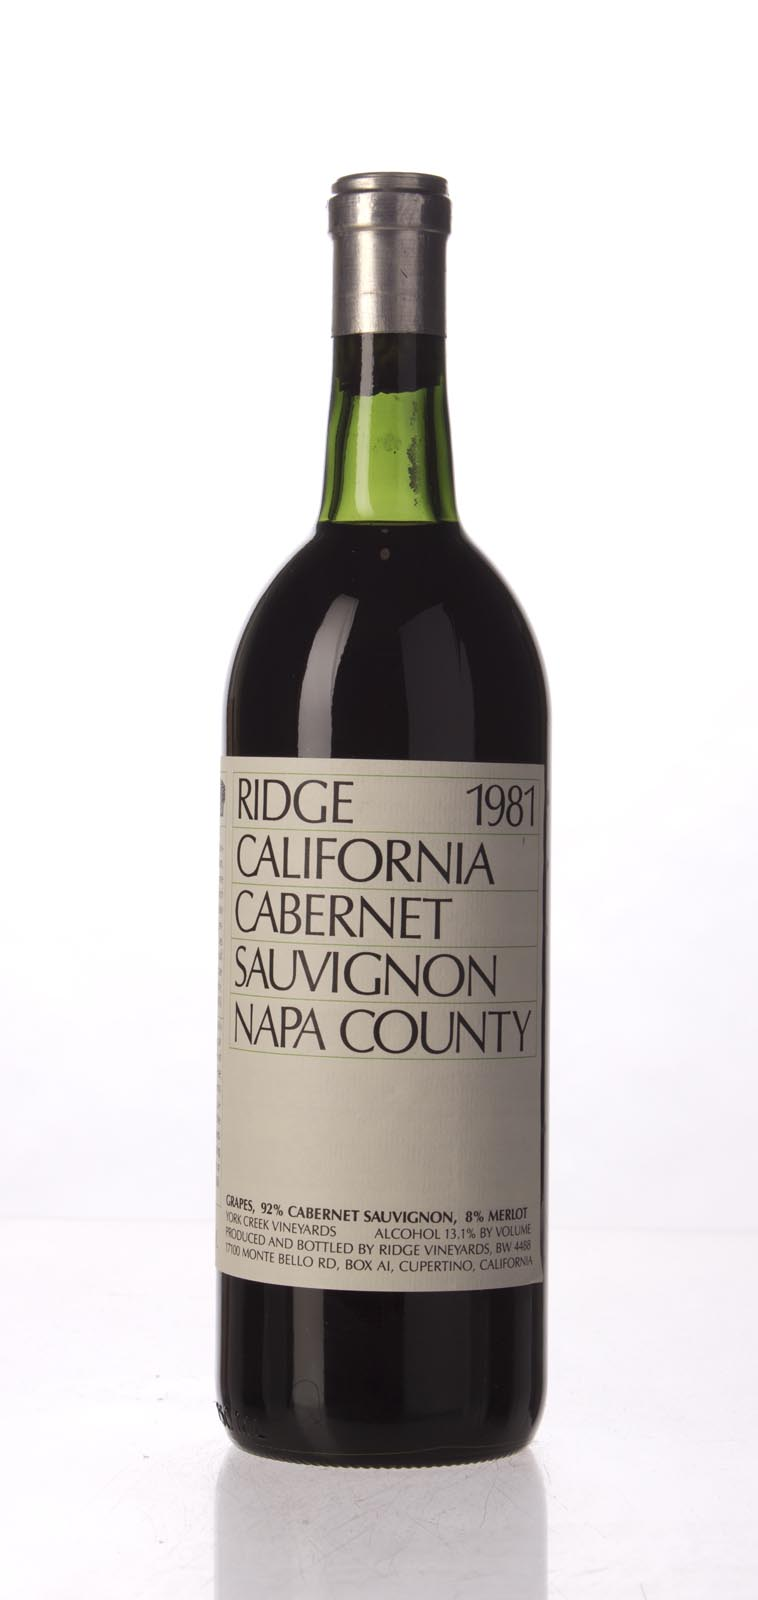 Ridge Cabernet Sauvignon Napa County 1981, 750mL () from The BPW - Merchants of rare and fine wines.